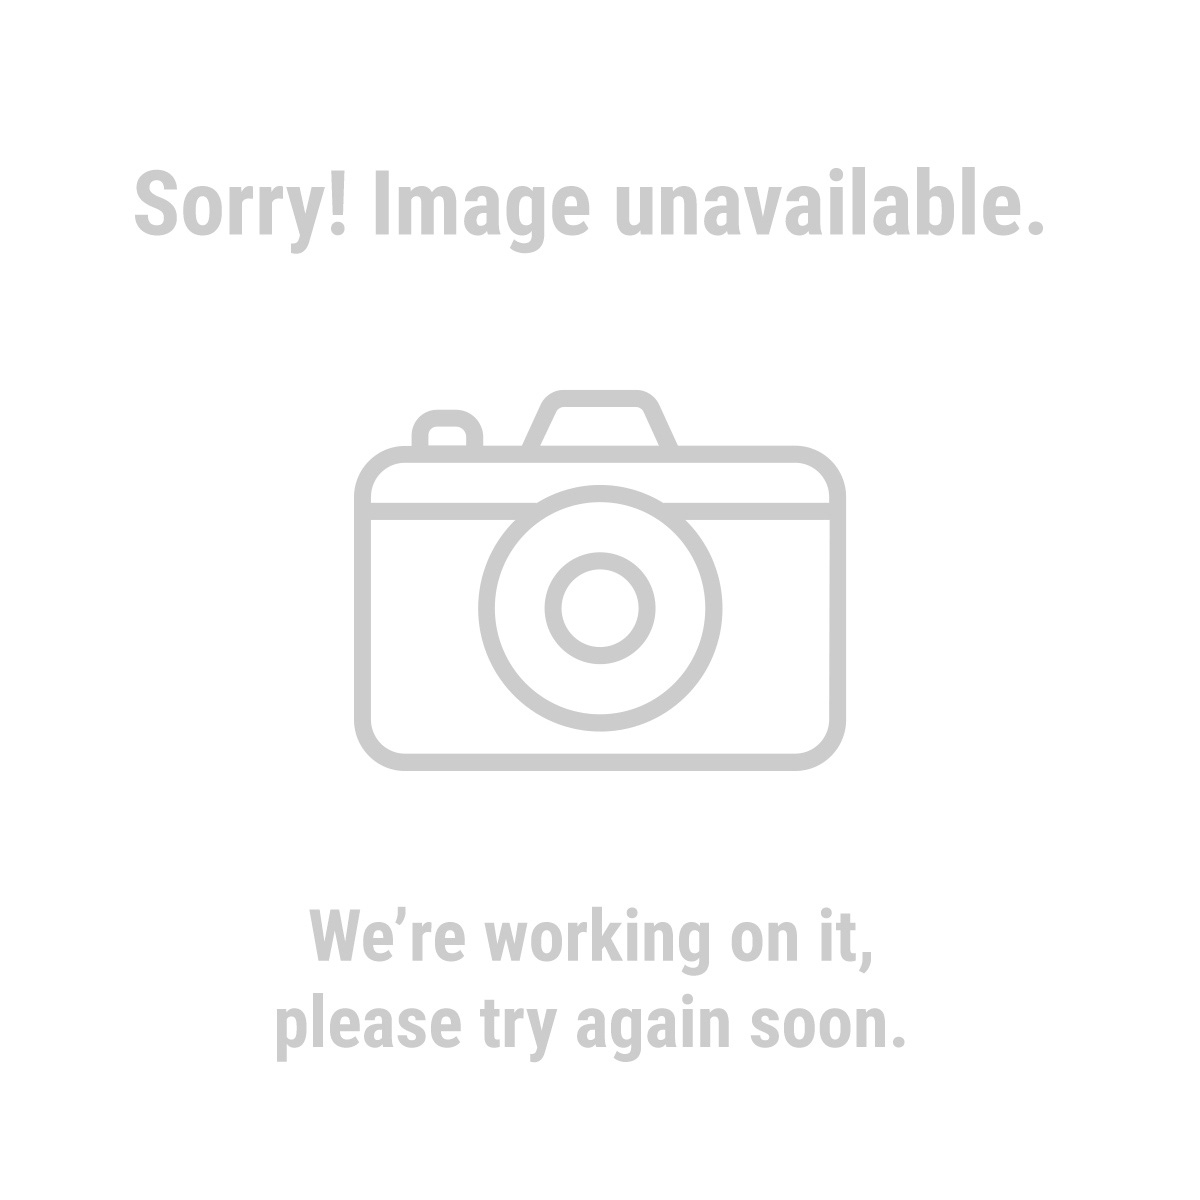 Haul-Master® 98933 12 Piece Amber Running Board Light Kit